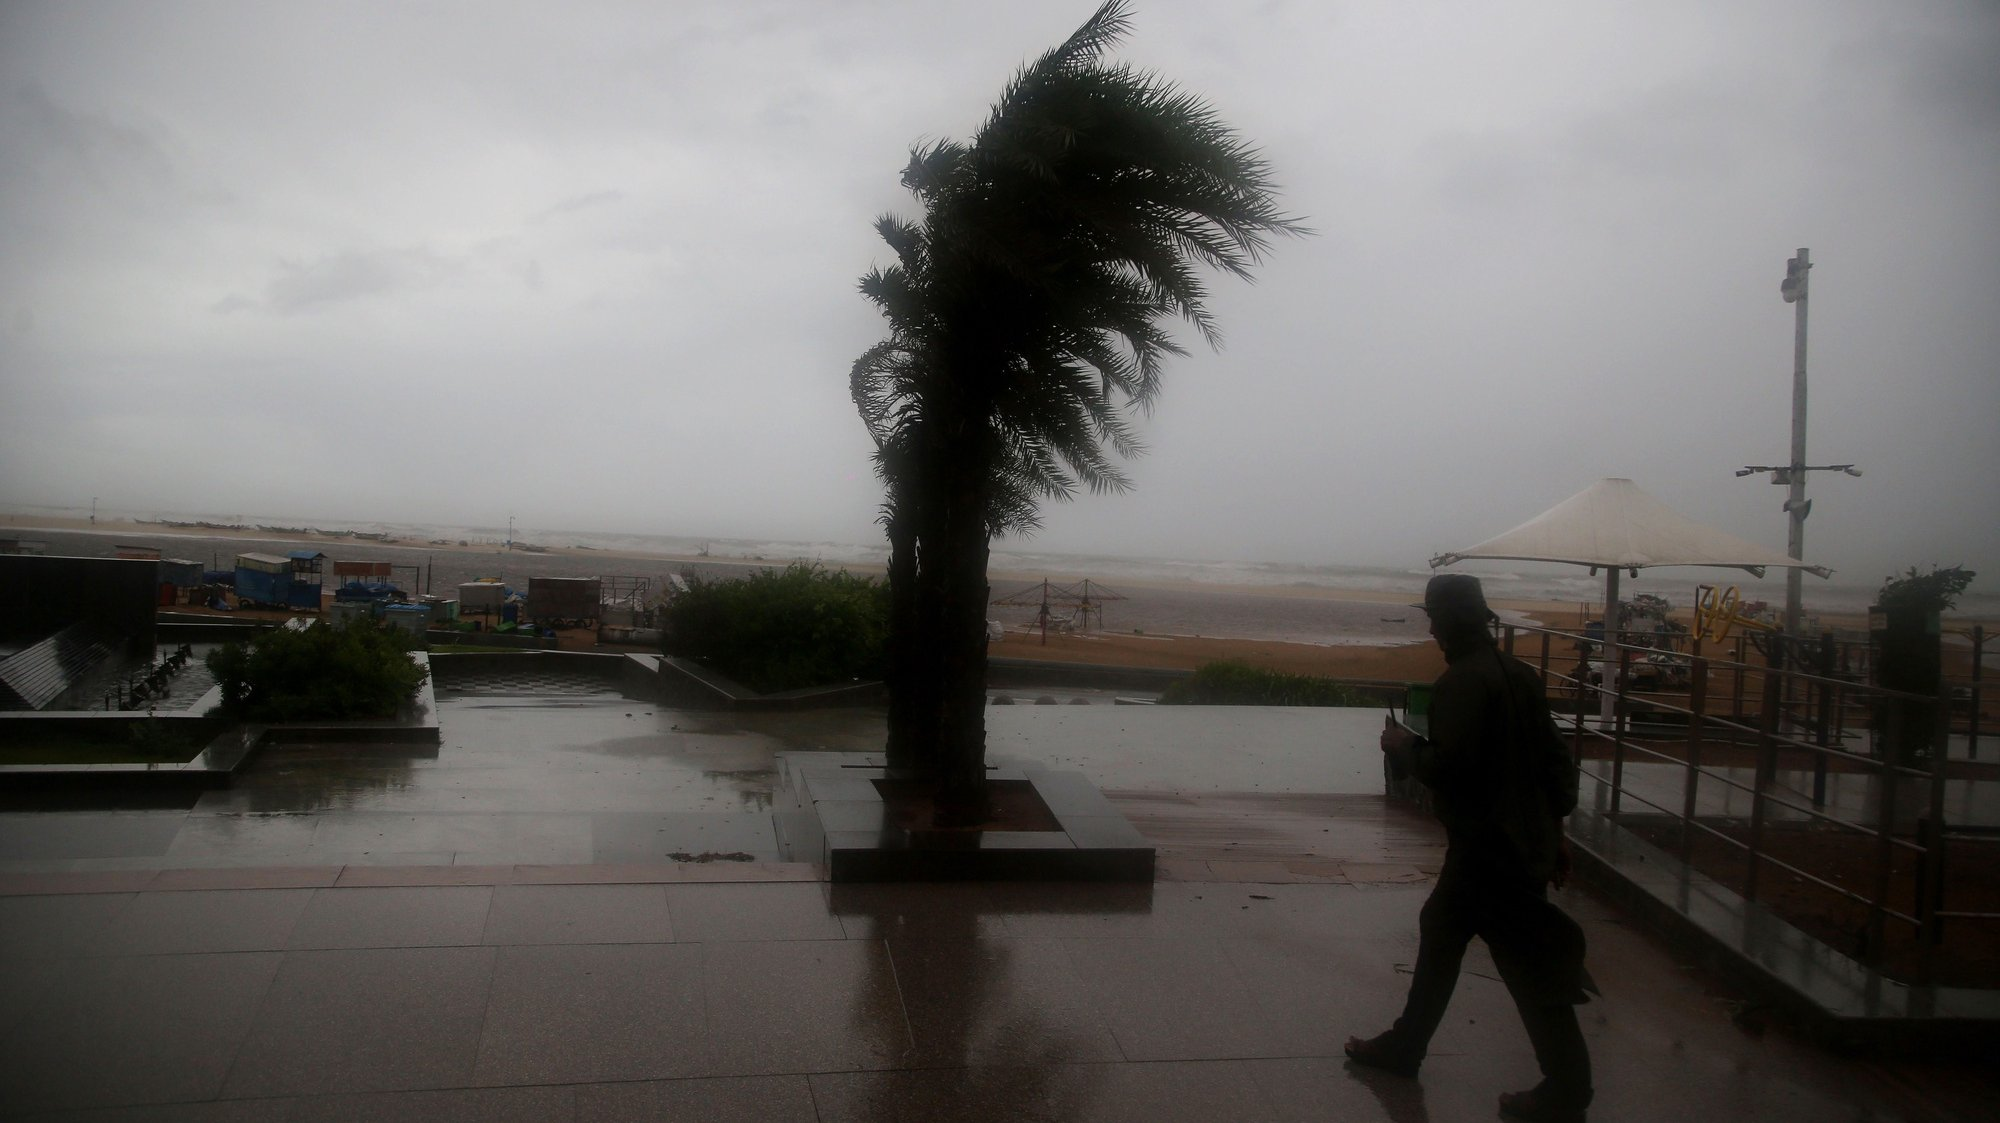 epa08841078 A general view showing heavy wind  in Chennai, India, 25 November 2020. Cyclone Nivar to make landfall in Tamil Nadu and in Puducherry on 25 November and 1,200 National Disaster Response Force (NDRF) personnel are on alert for any rescue work as India Meteorological Department also predicted heavy to very heavy rain in the affected area.  EPA/BABU